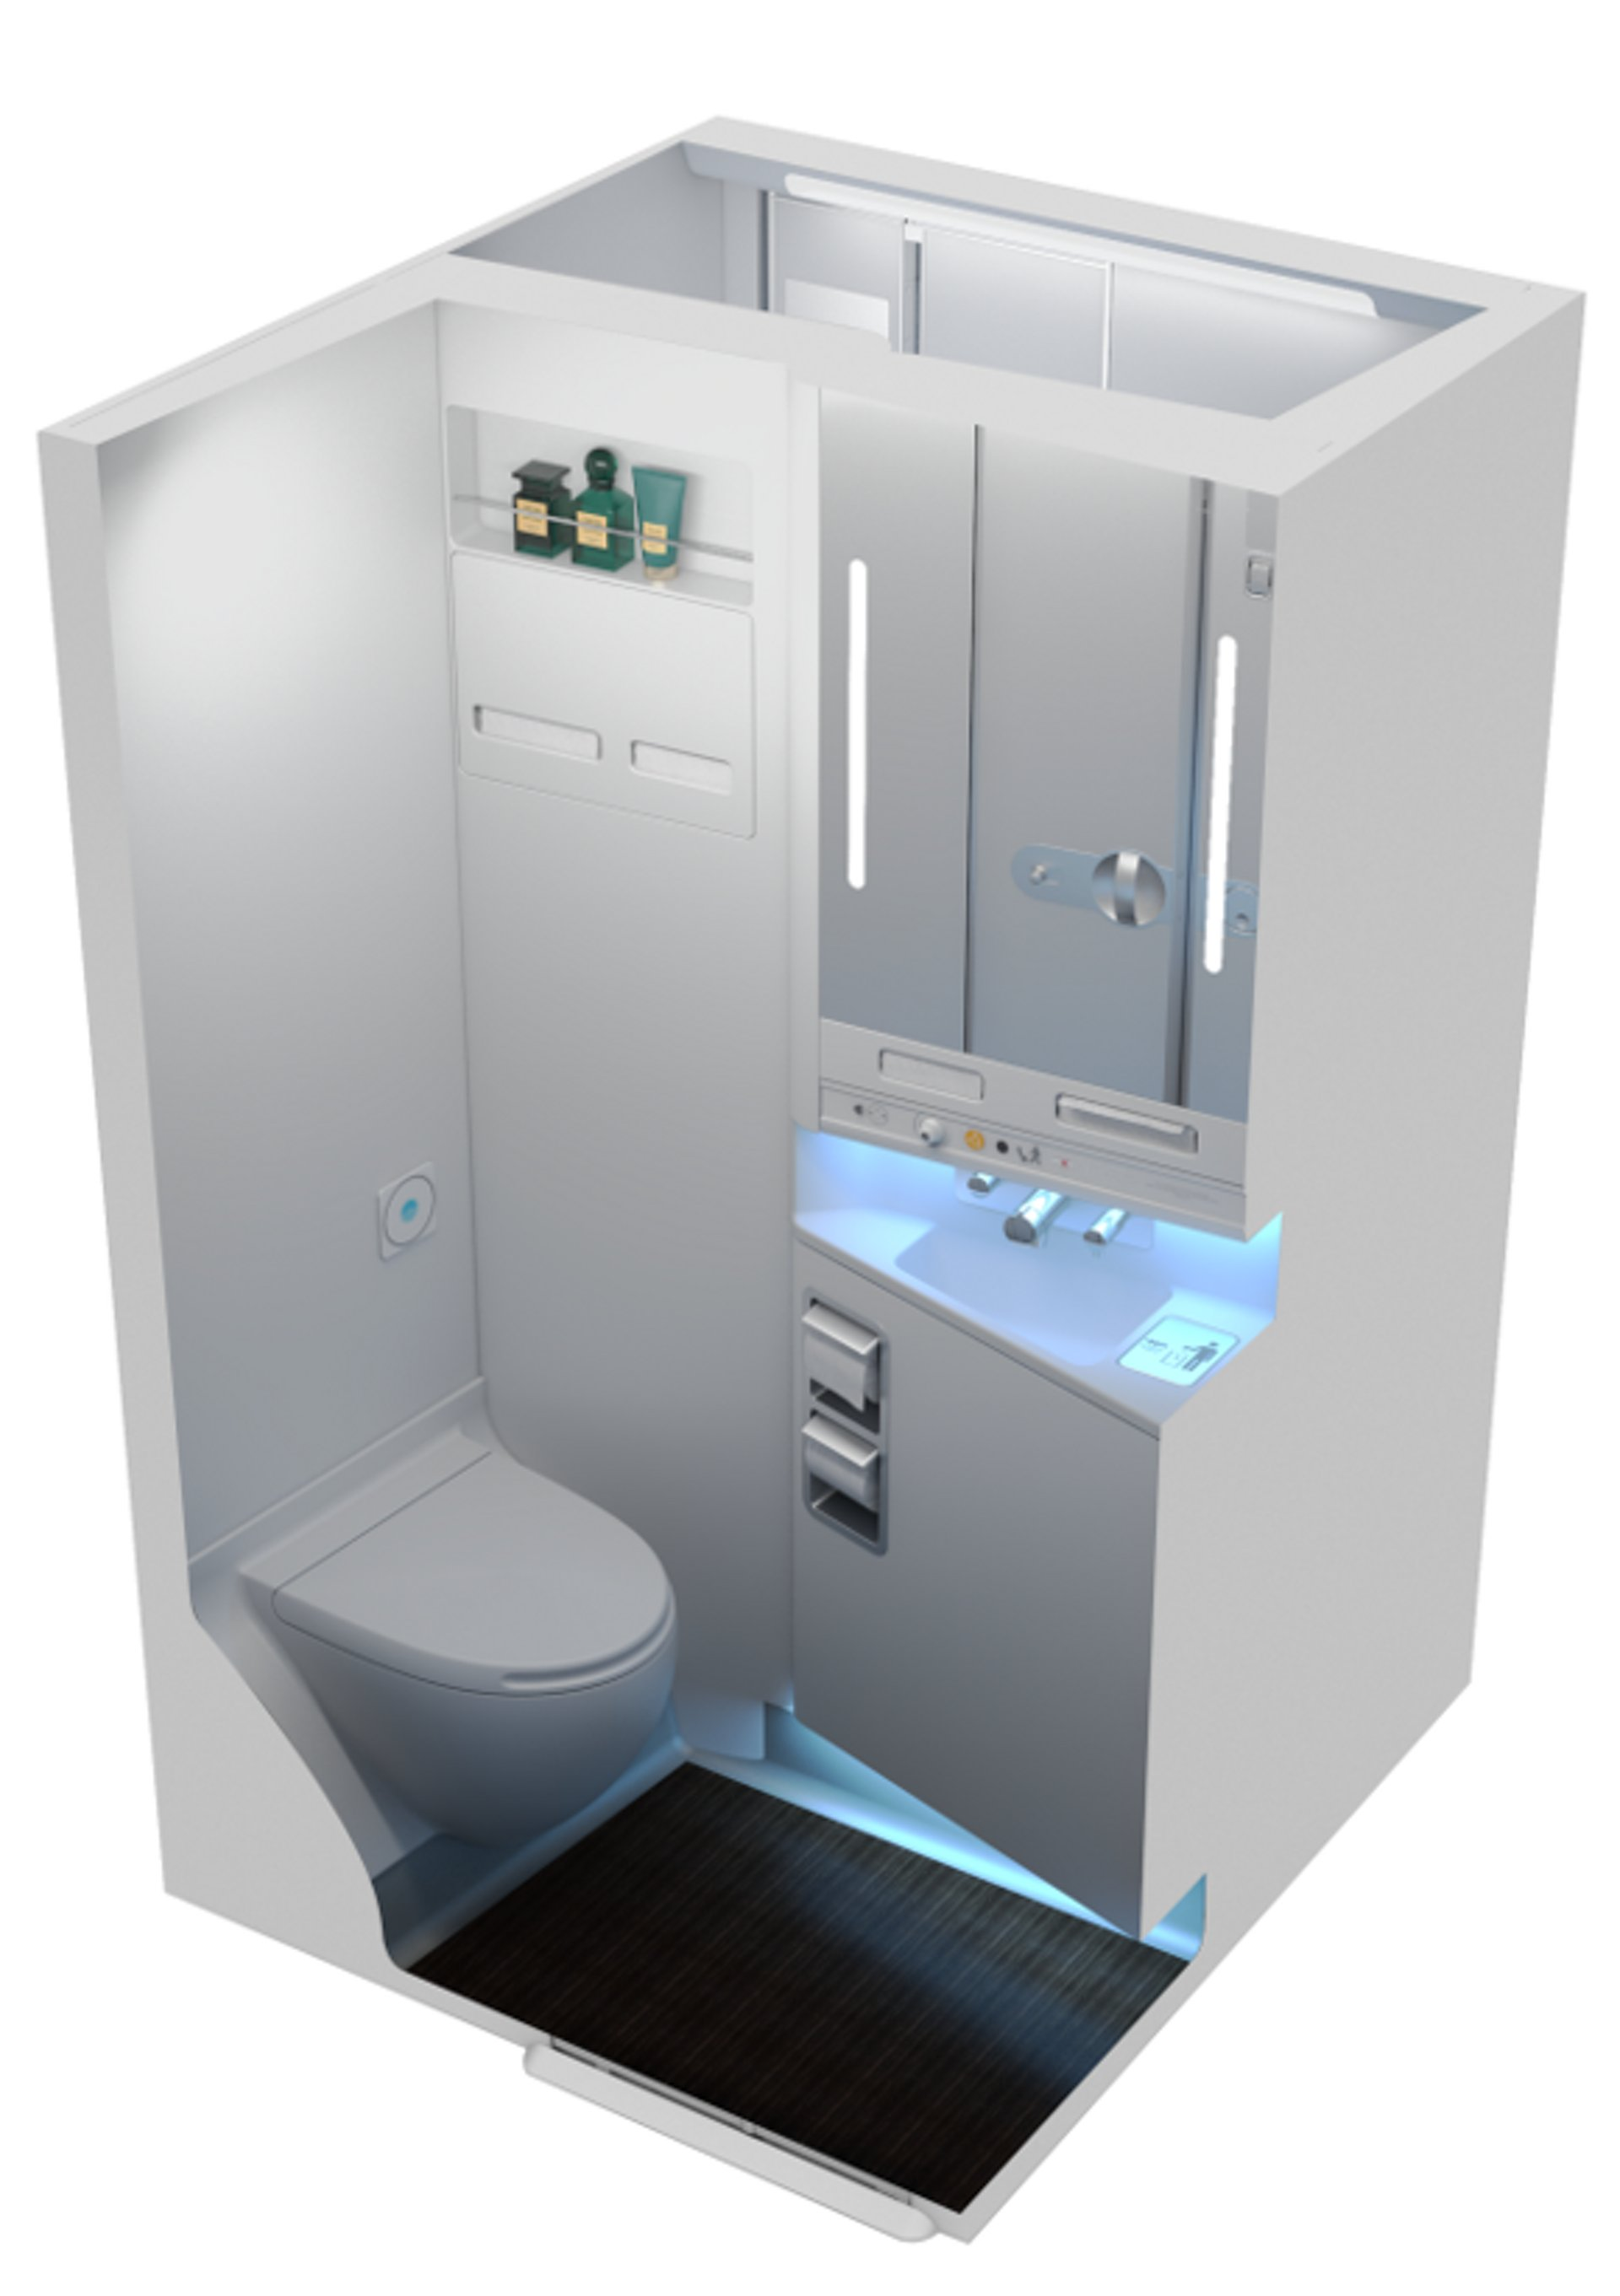 Optimised lavatory design providing more cabin length for more seats in a 9-abreast tailored configuration.